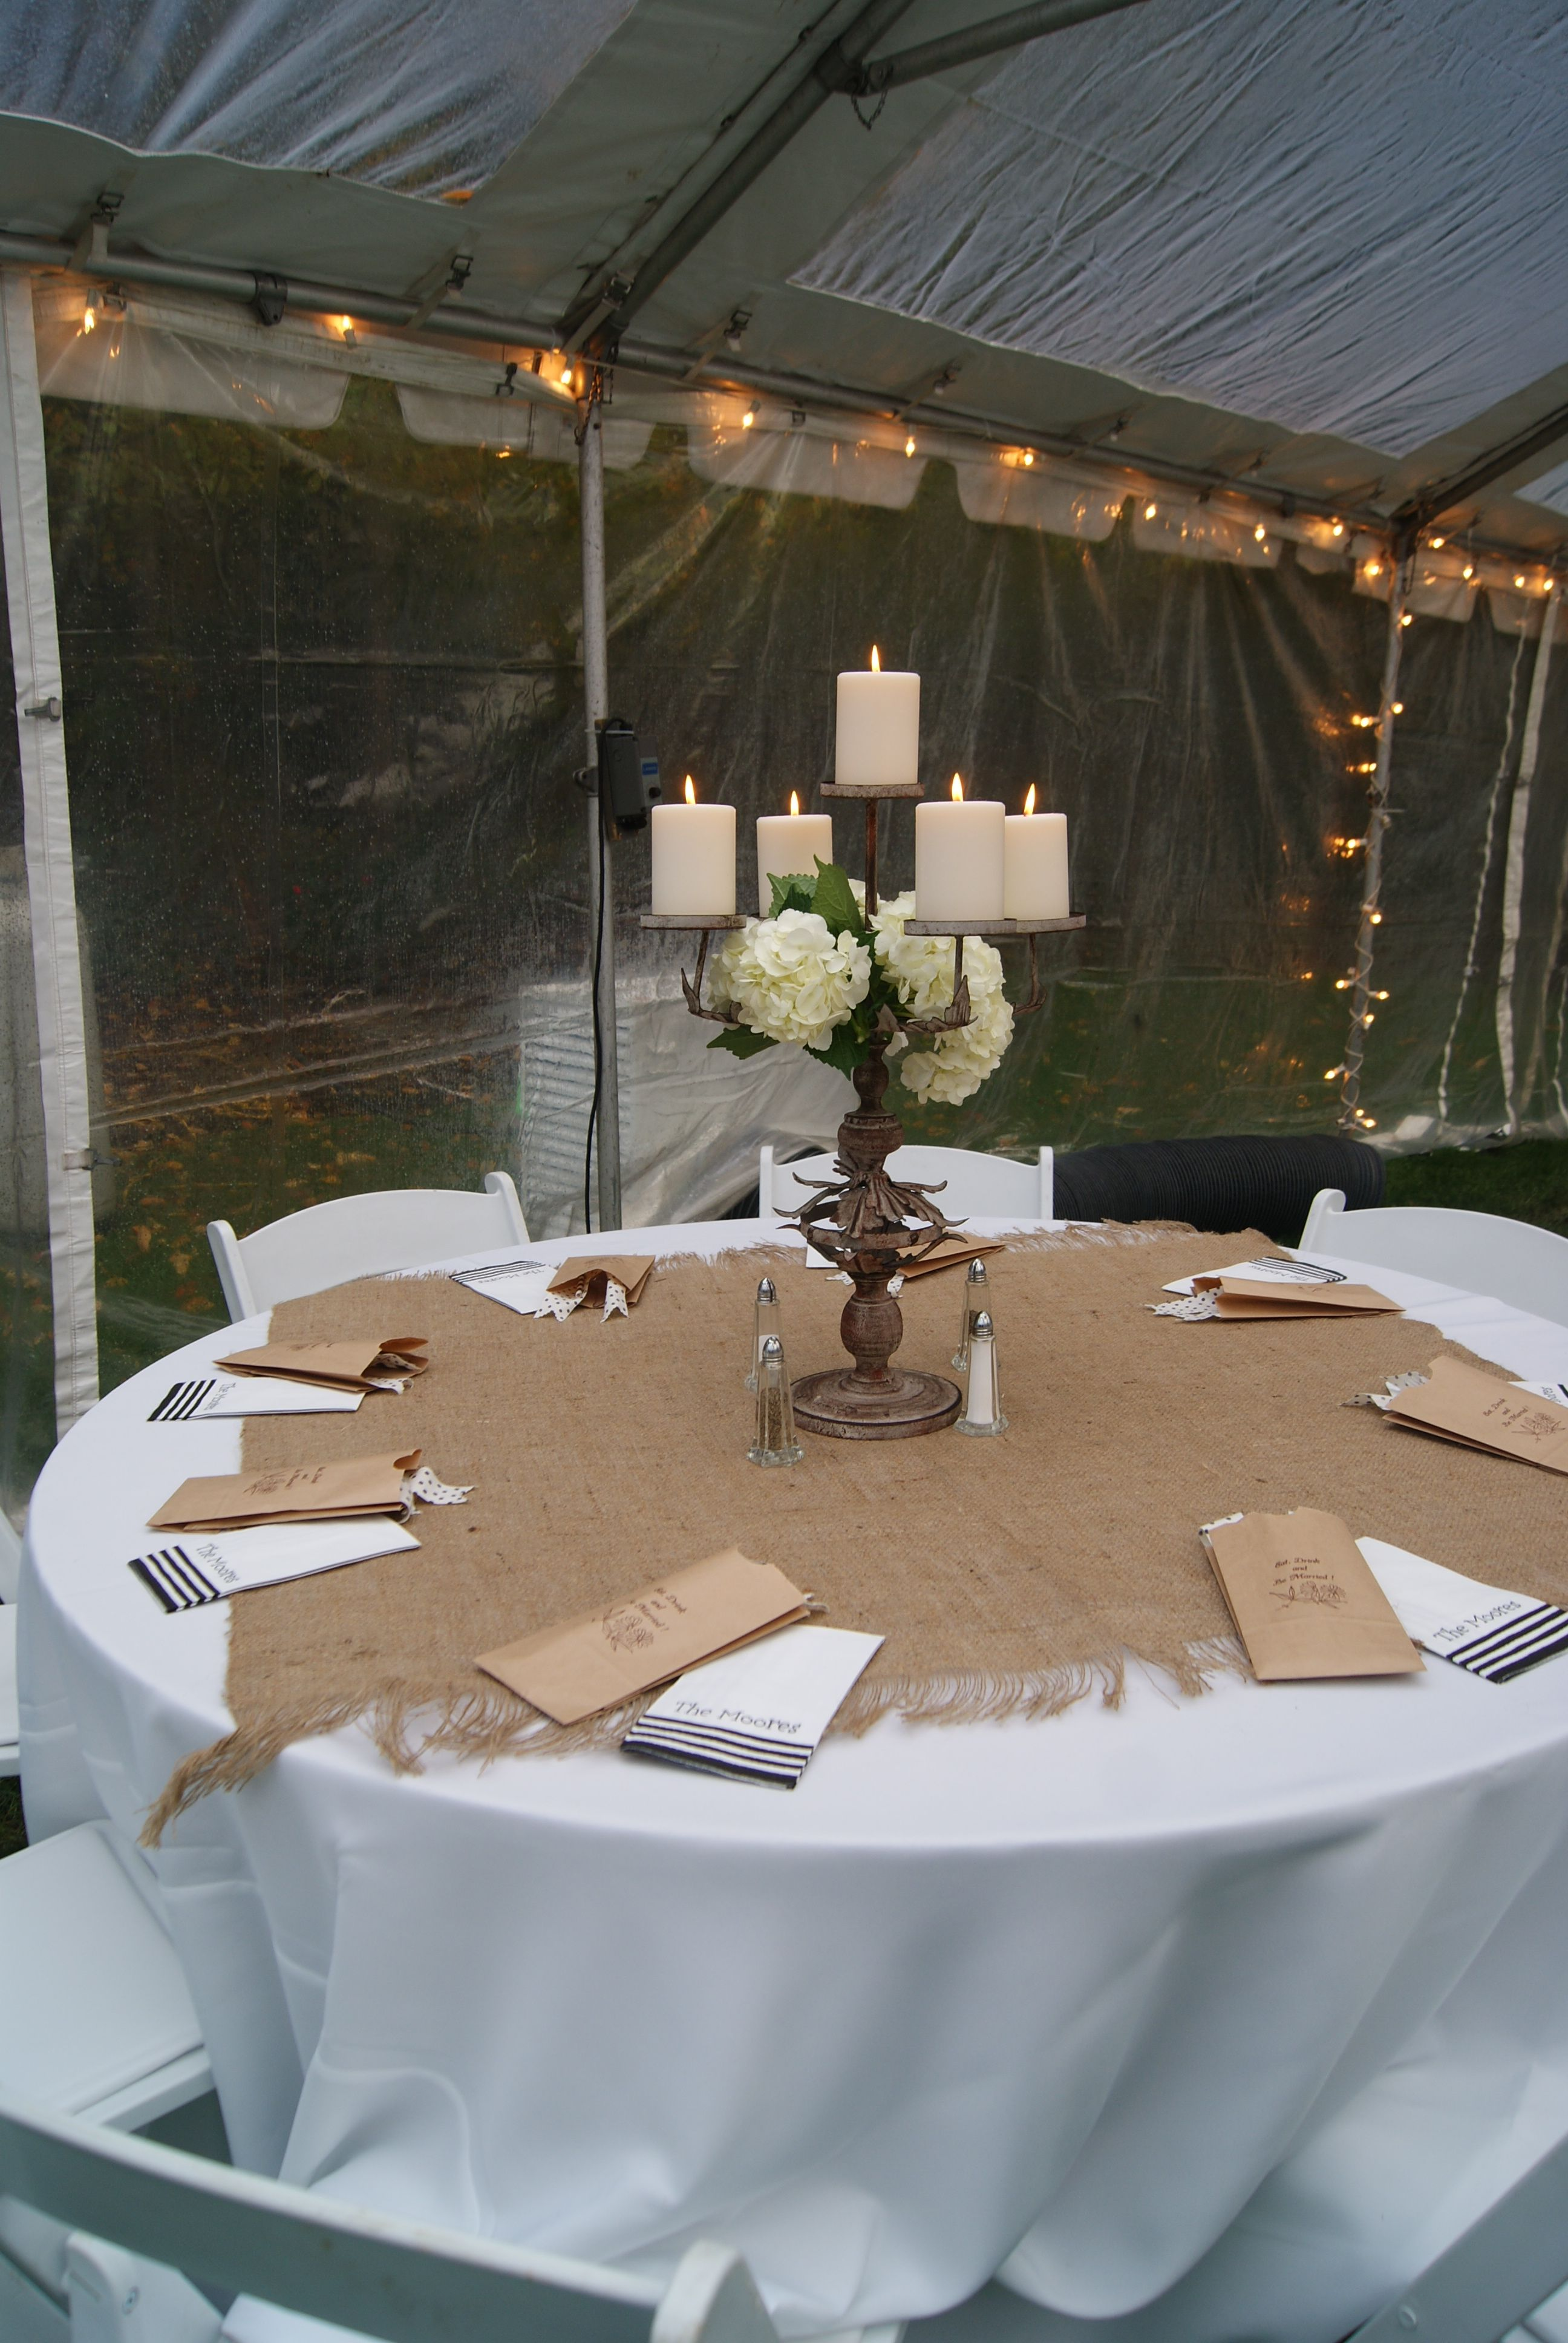 Reception I Like The Burlap On Top Of The White Table Cloth